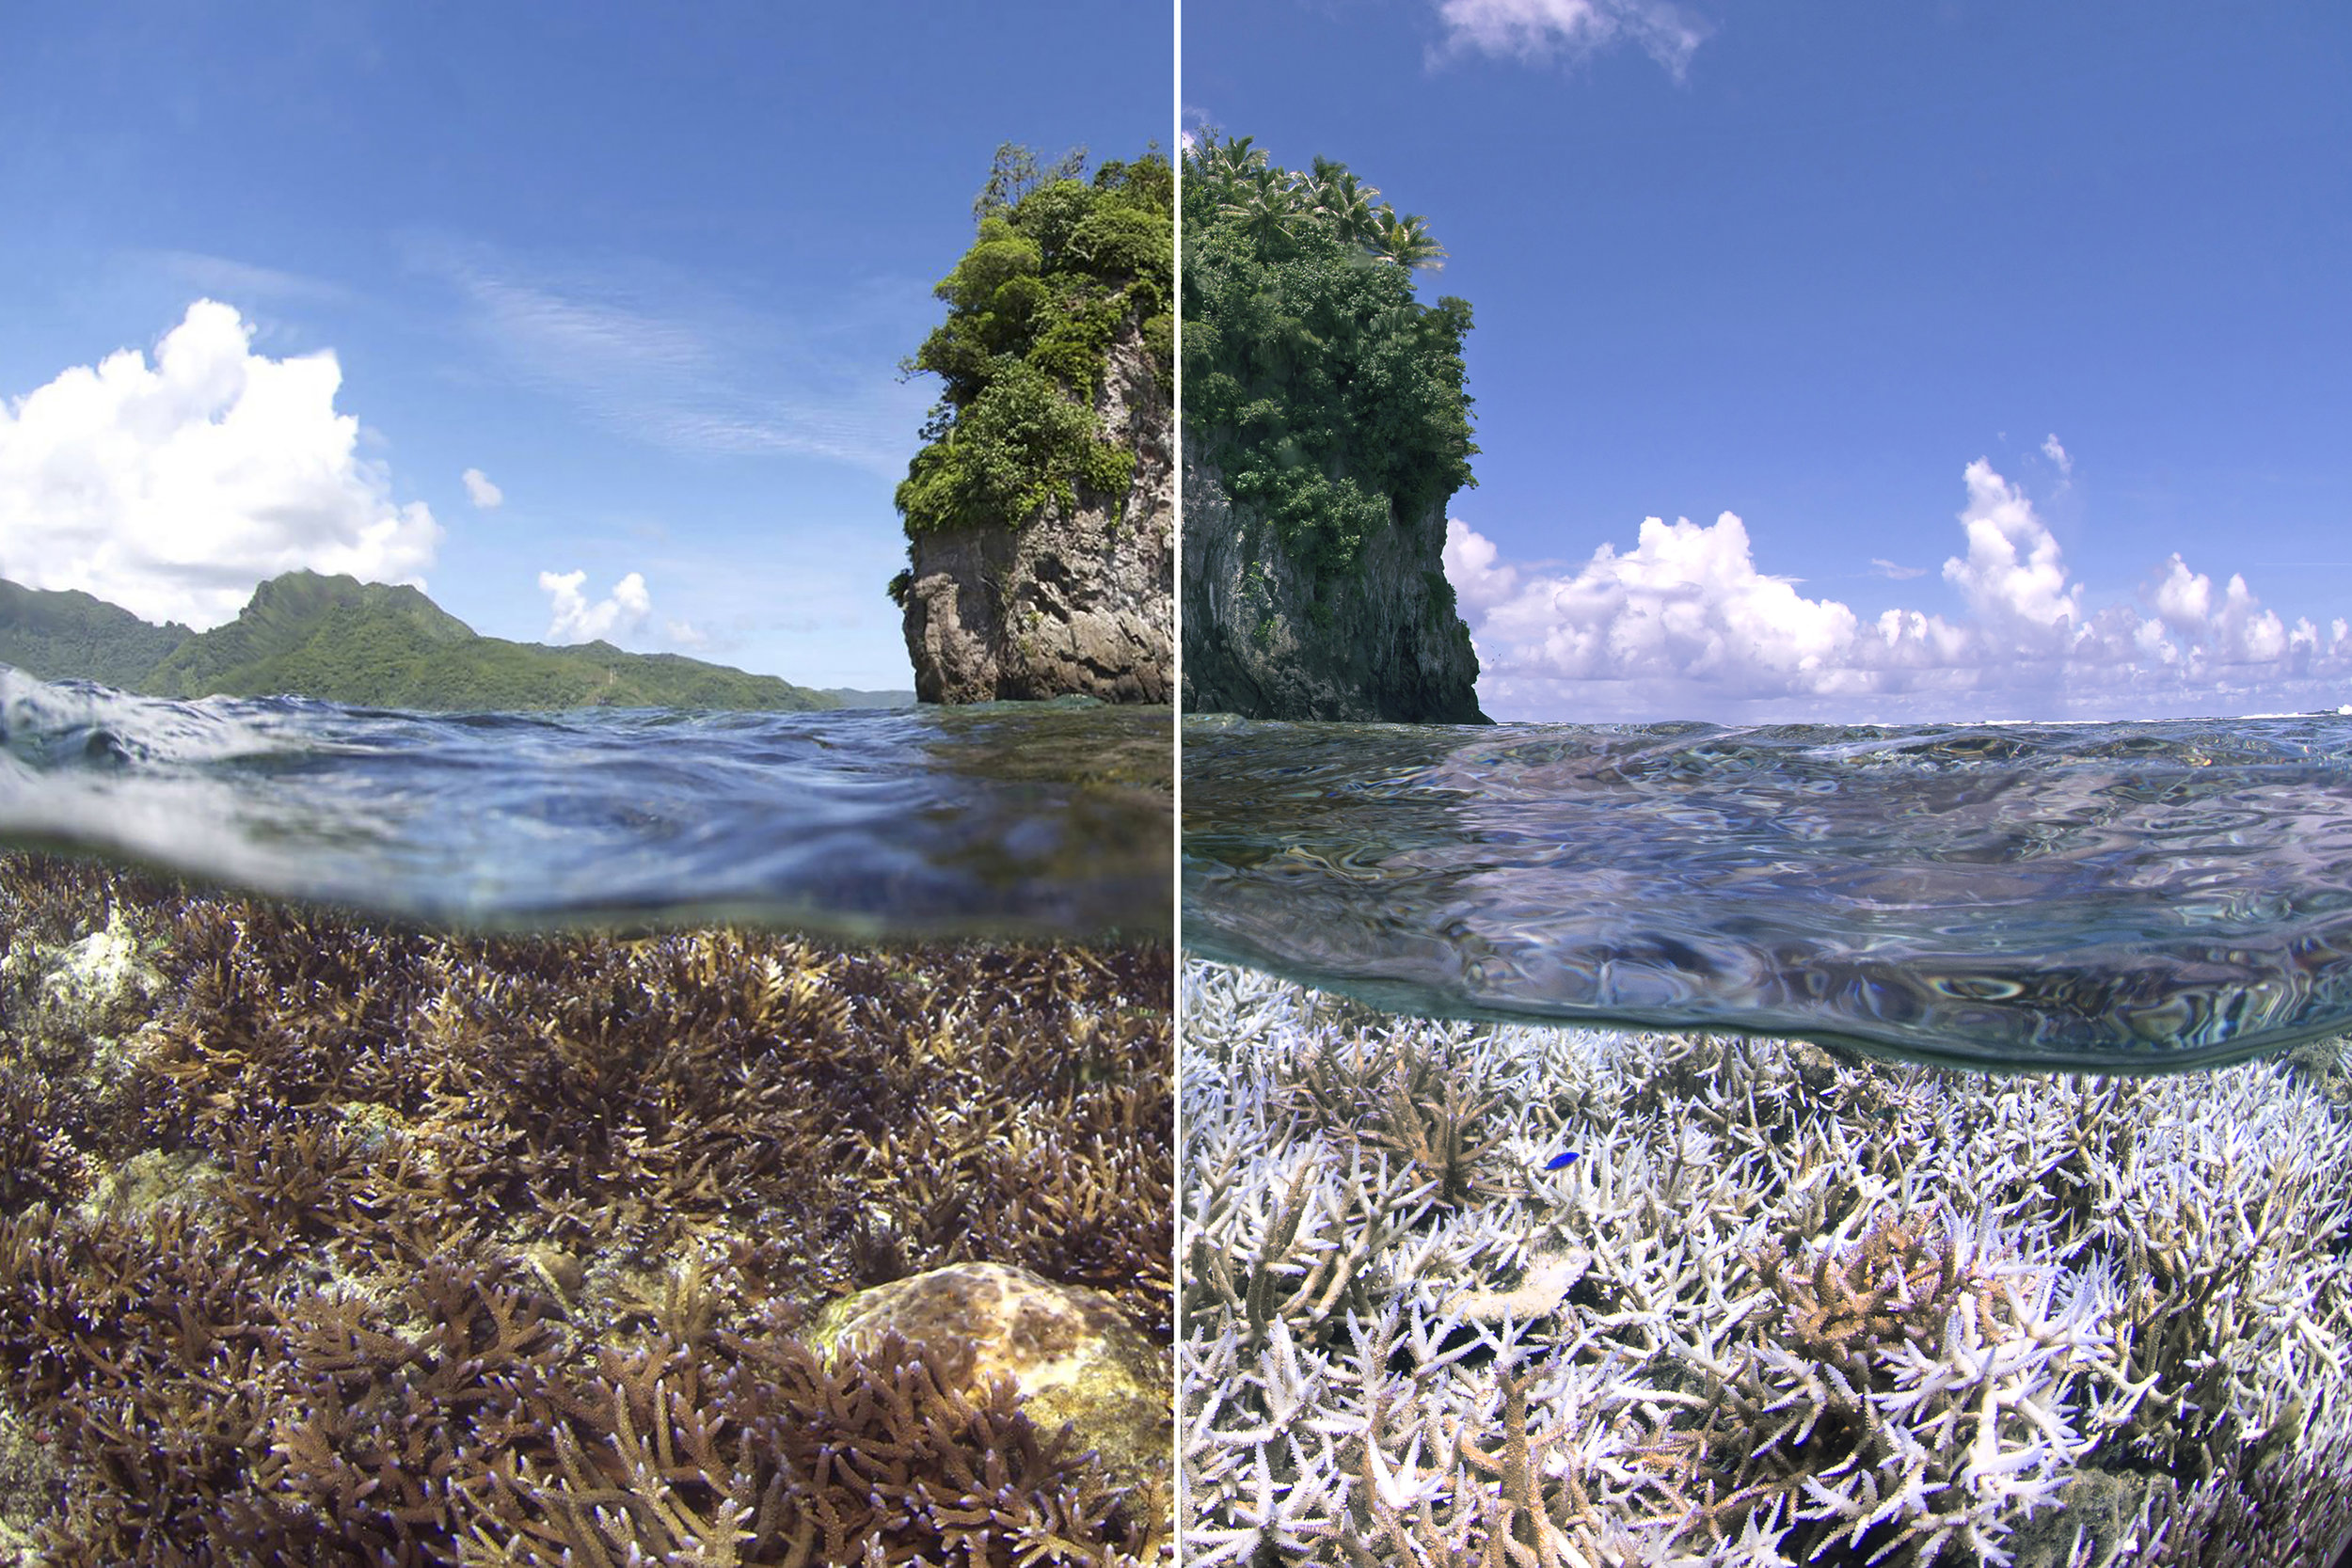 Coral reef degradation is a global problem. These ecosystems are dying before our eyes, and the consequences are heartbreaking. Photo credit: The Ocean Agency / XL Catlin Seaview Survey